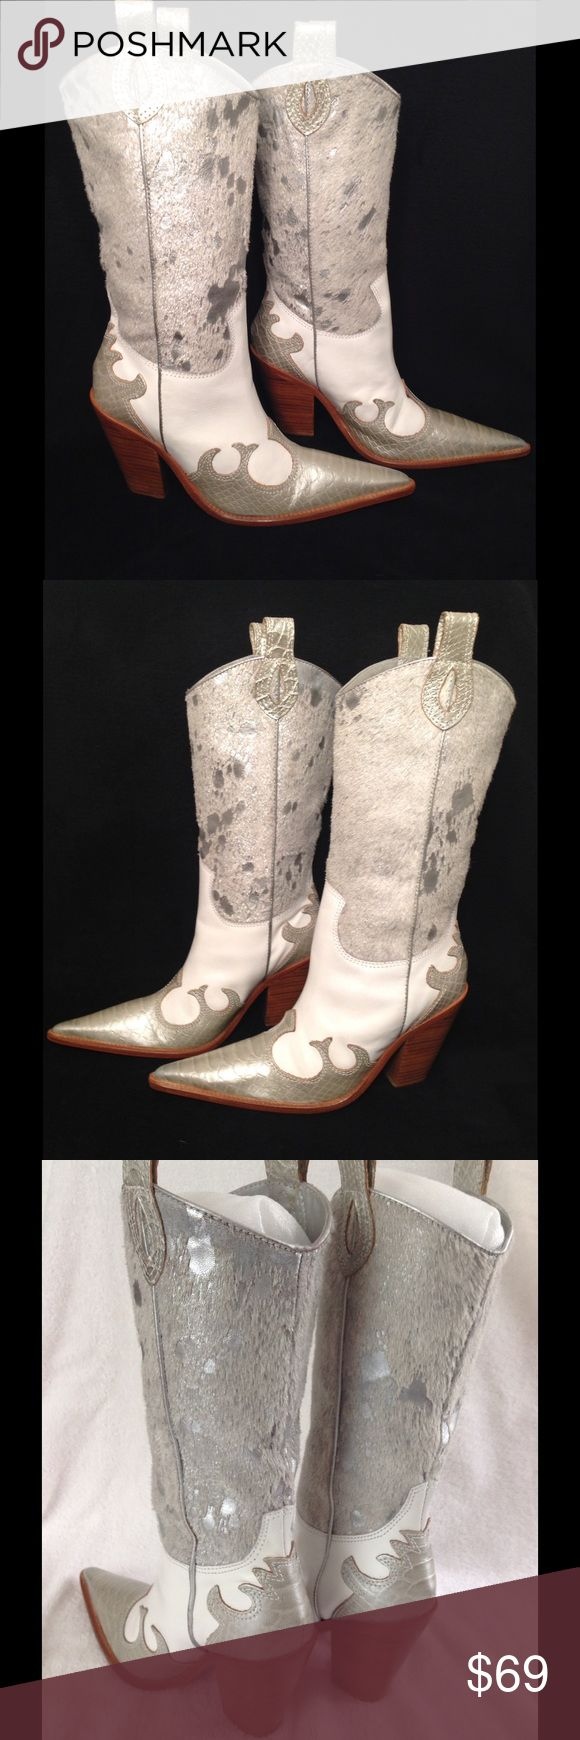 """Para Raio Sz 6M Western Boots Para Raio~Women's Sz 6M...ALL LEATHER! Made in Brazil White Leather with Silver Metallic and Calf-Hair Shaft and Part Croc Embossed Pearlized Toe. Awesome Cowboy/Western Style Boots. Very Pointed Toe and Stacked Cuban Heel!! Full Leather Upper and Leather Sole! Natural Light/Dark Variations in Calf Hair! Soles are BARELY Used! They Run a little big because of the Pointy Toe AWESOME  Condition! No Rips, Holes,StainsSmells Inside and Out! Shaft 12"""" Calf…"""